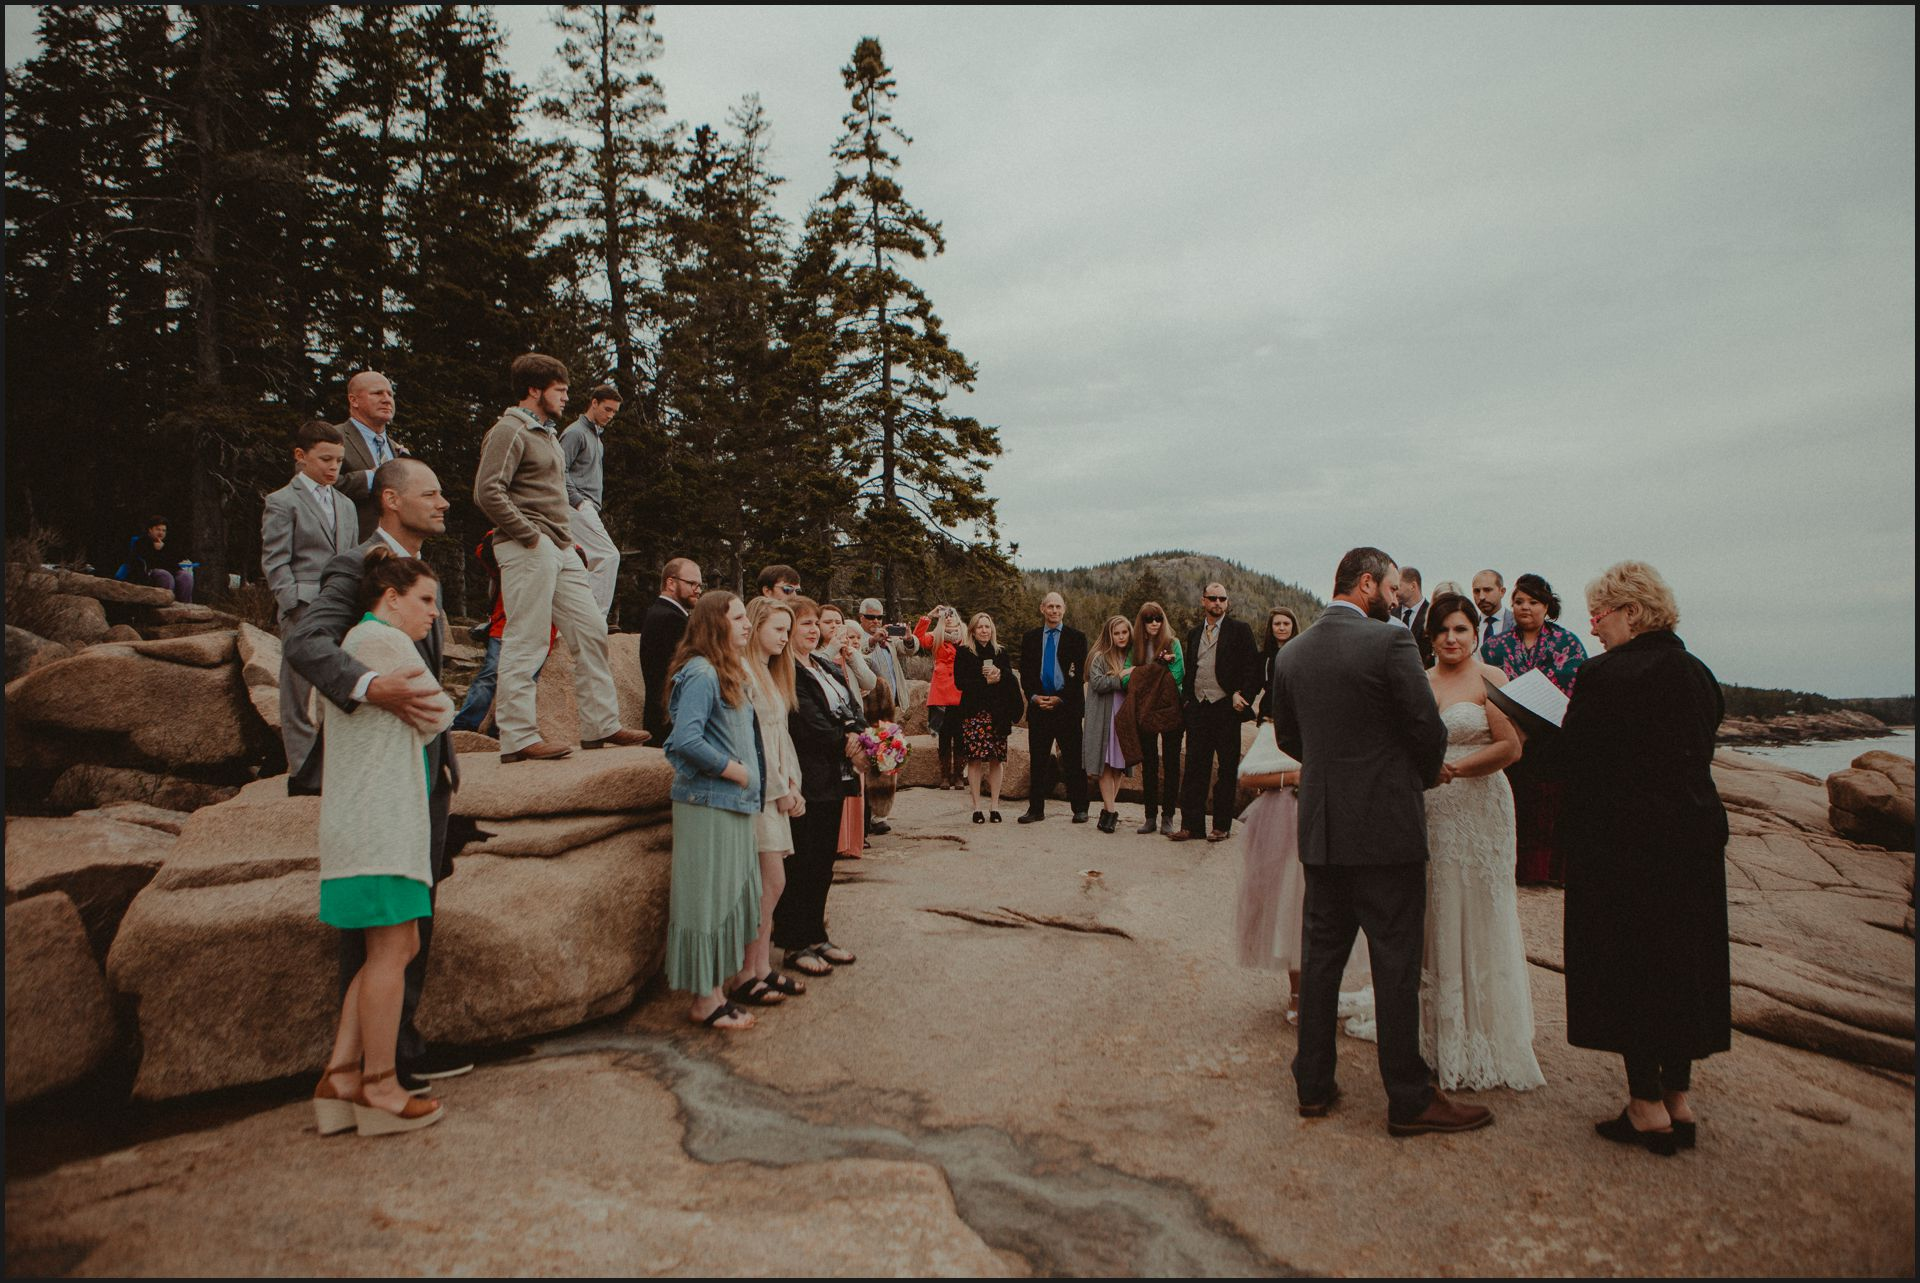 wedding venue, cliff, maine wedding, acadia national park, ceremony, bride and groom, friends, celebrant, wedding by the ocean